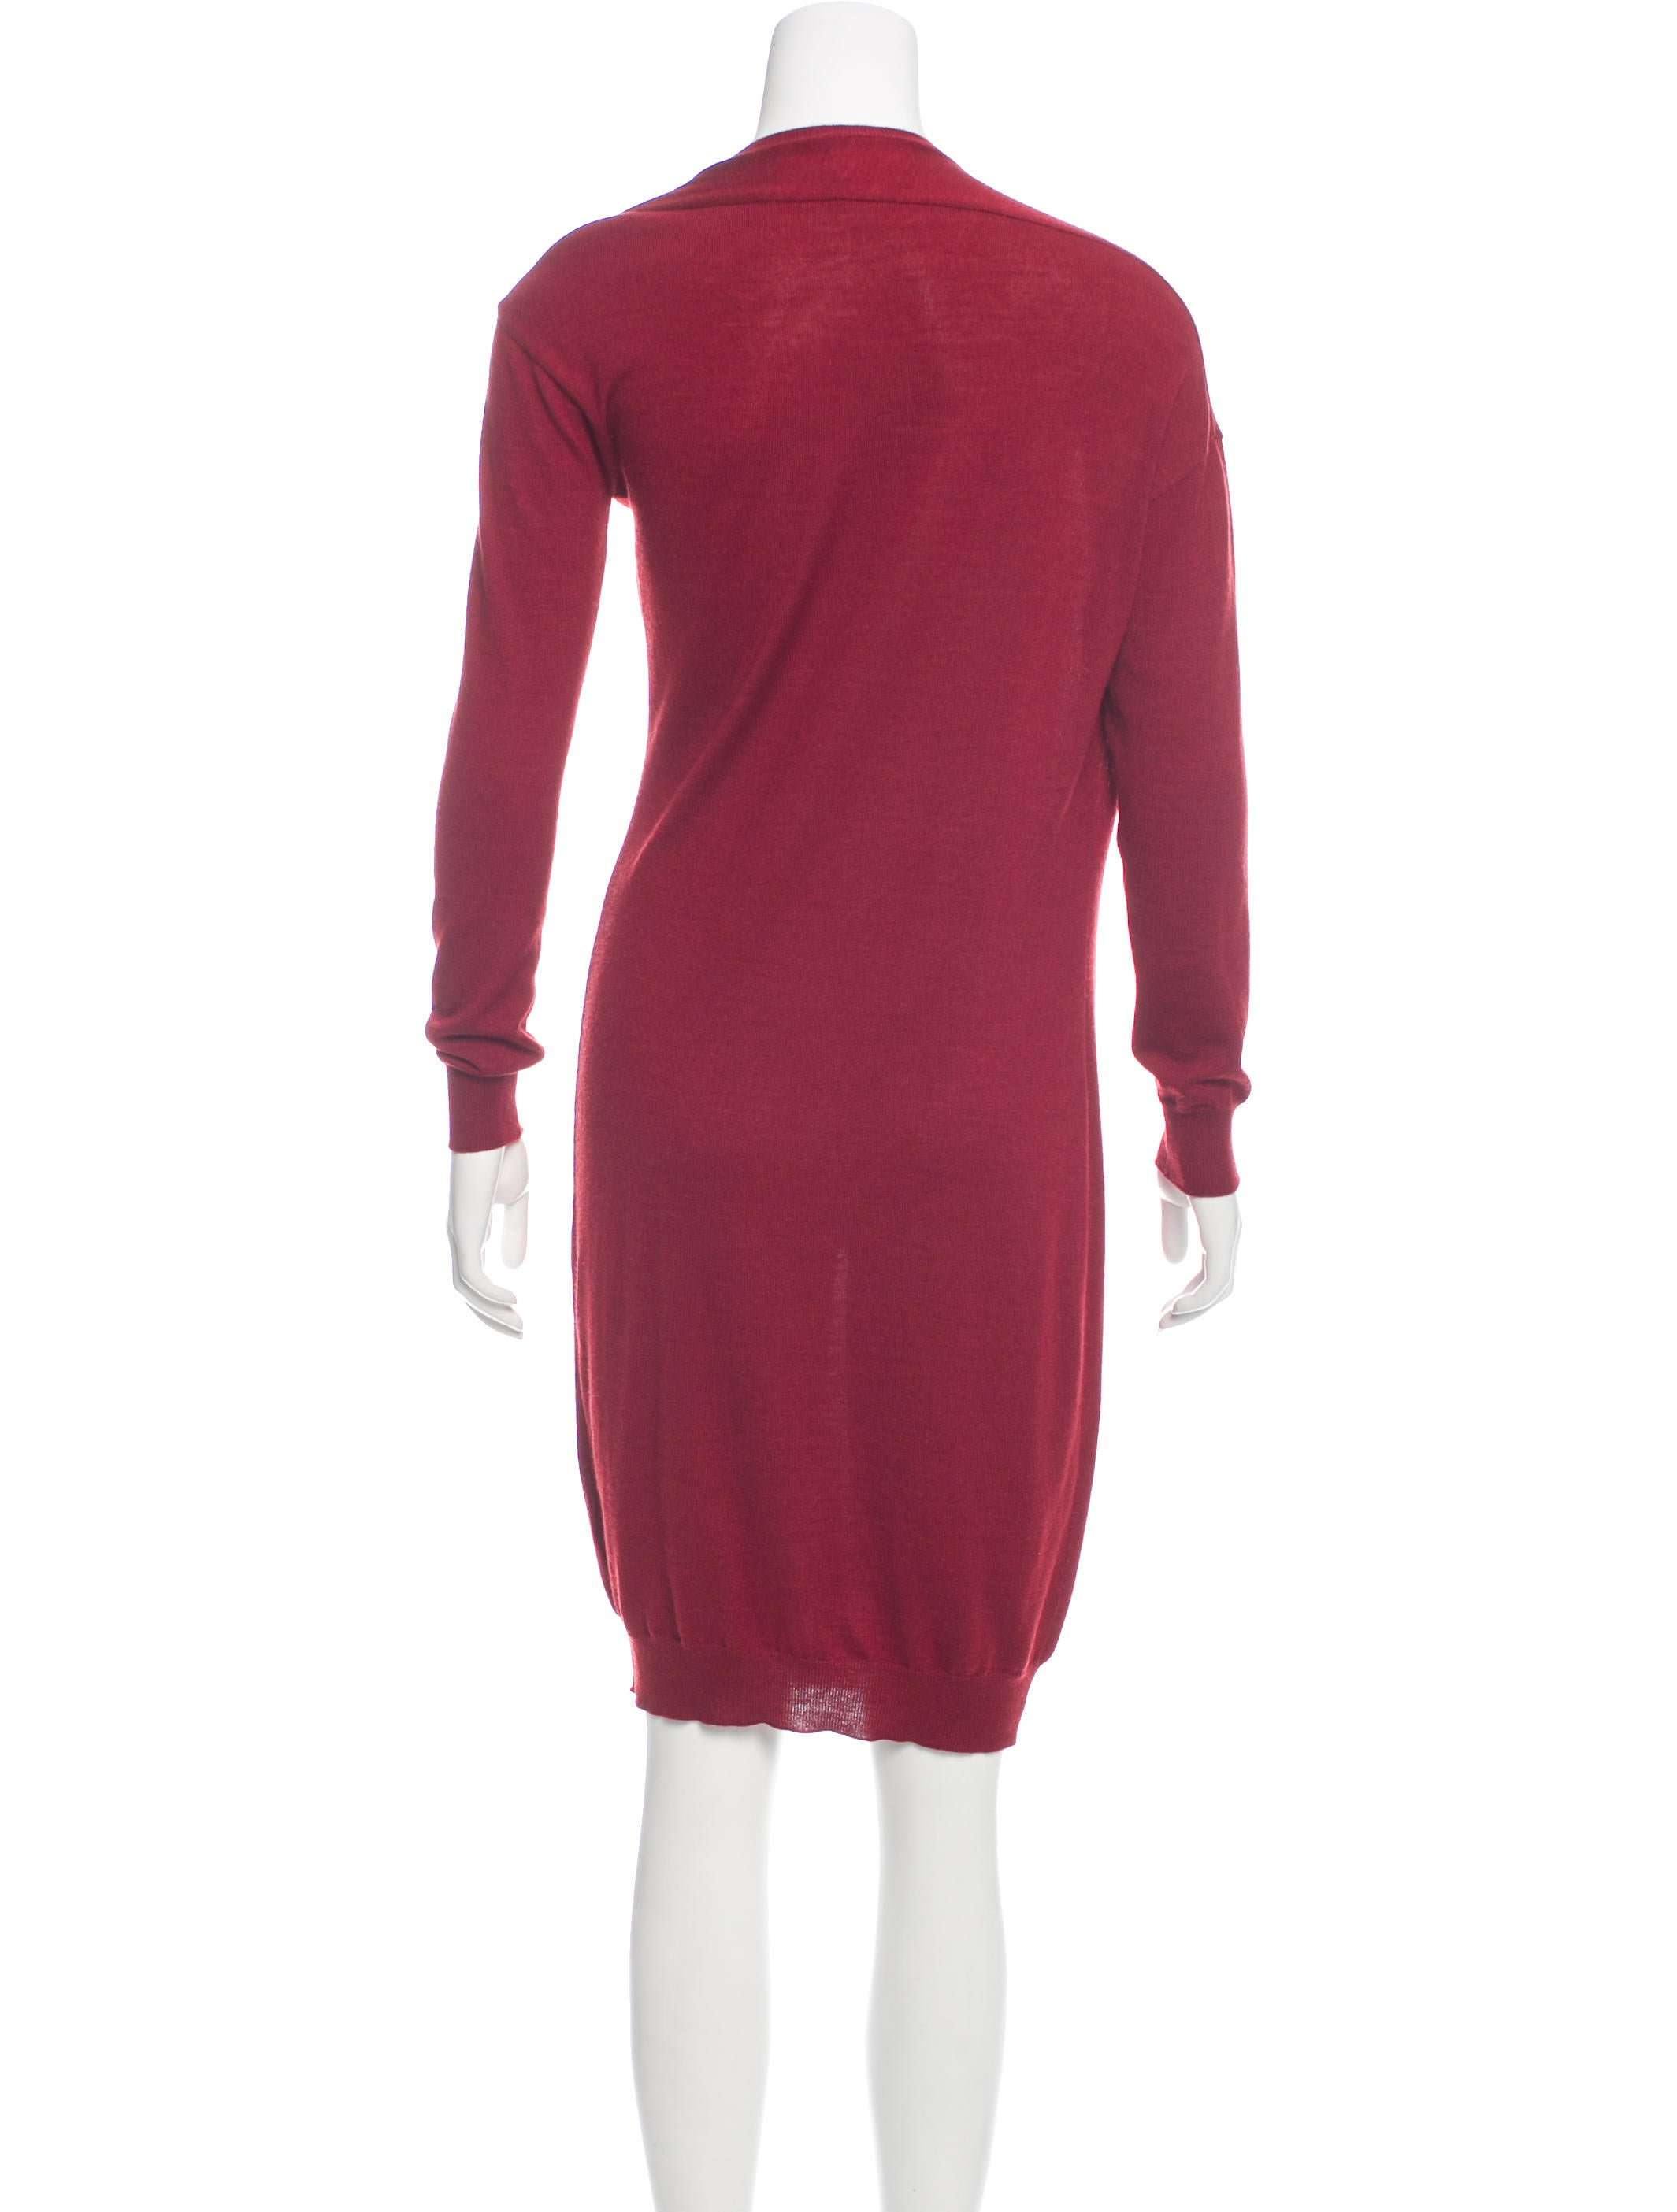 lanvin wool blend sweater dress clothing